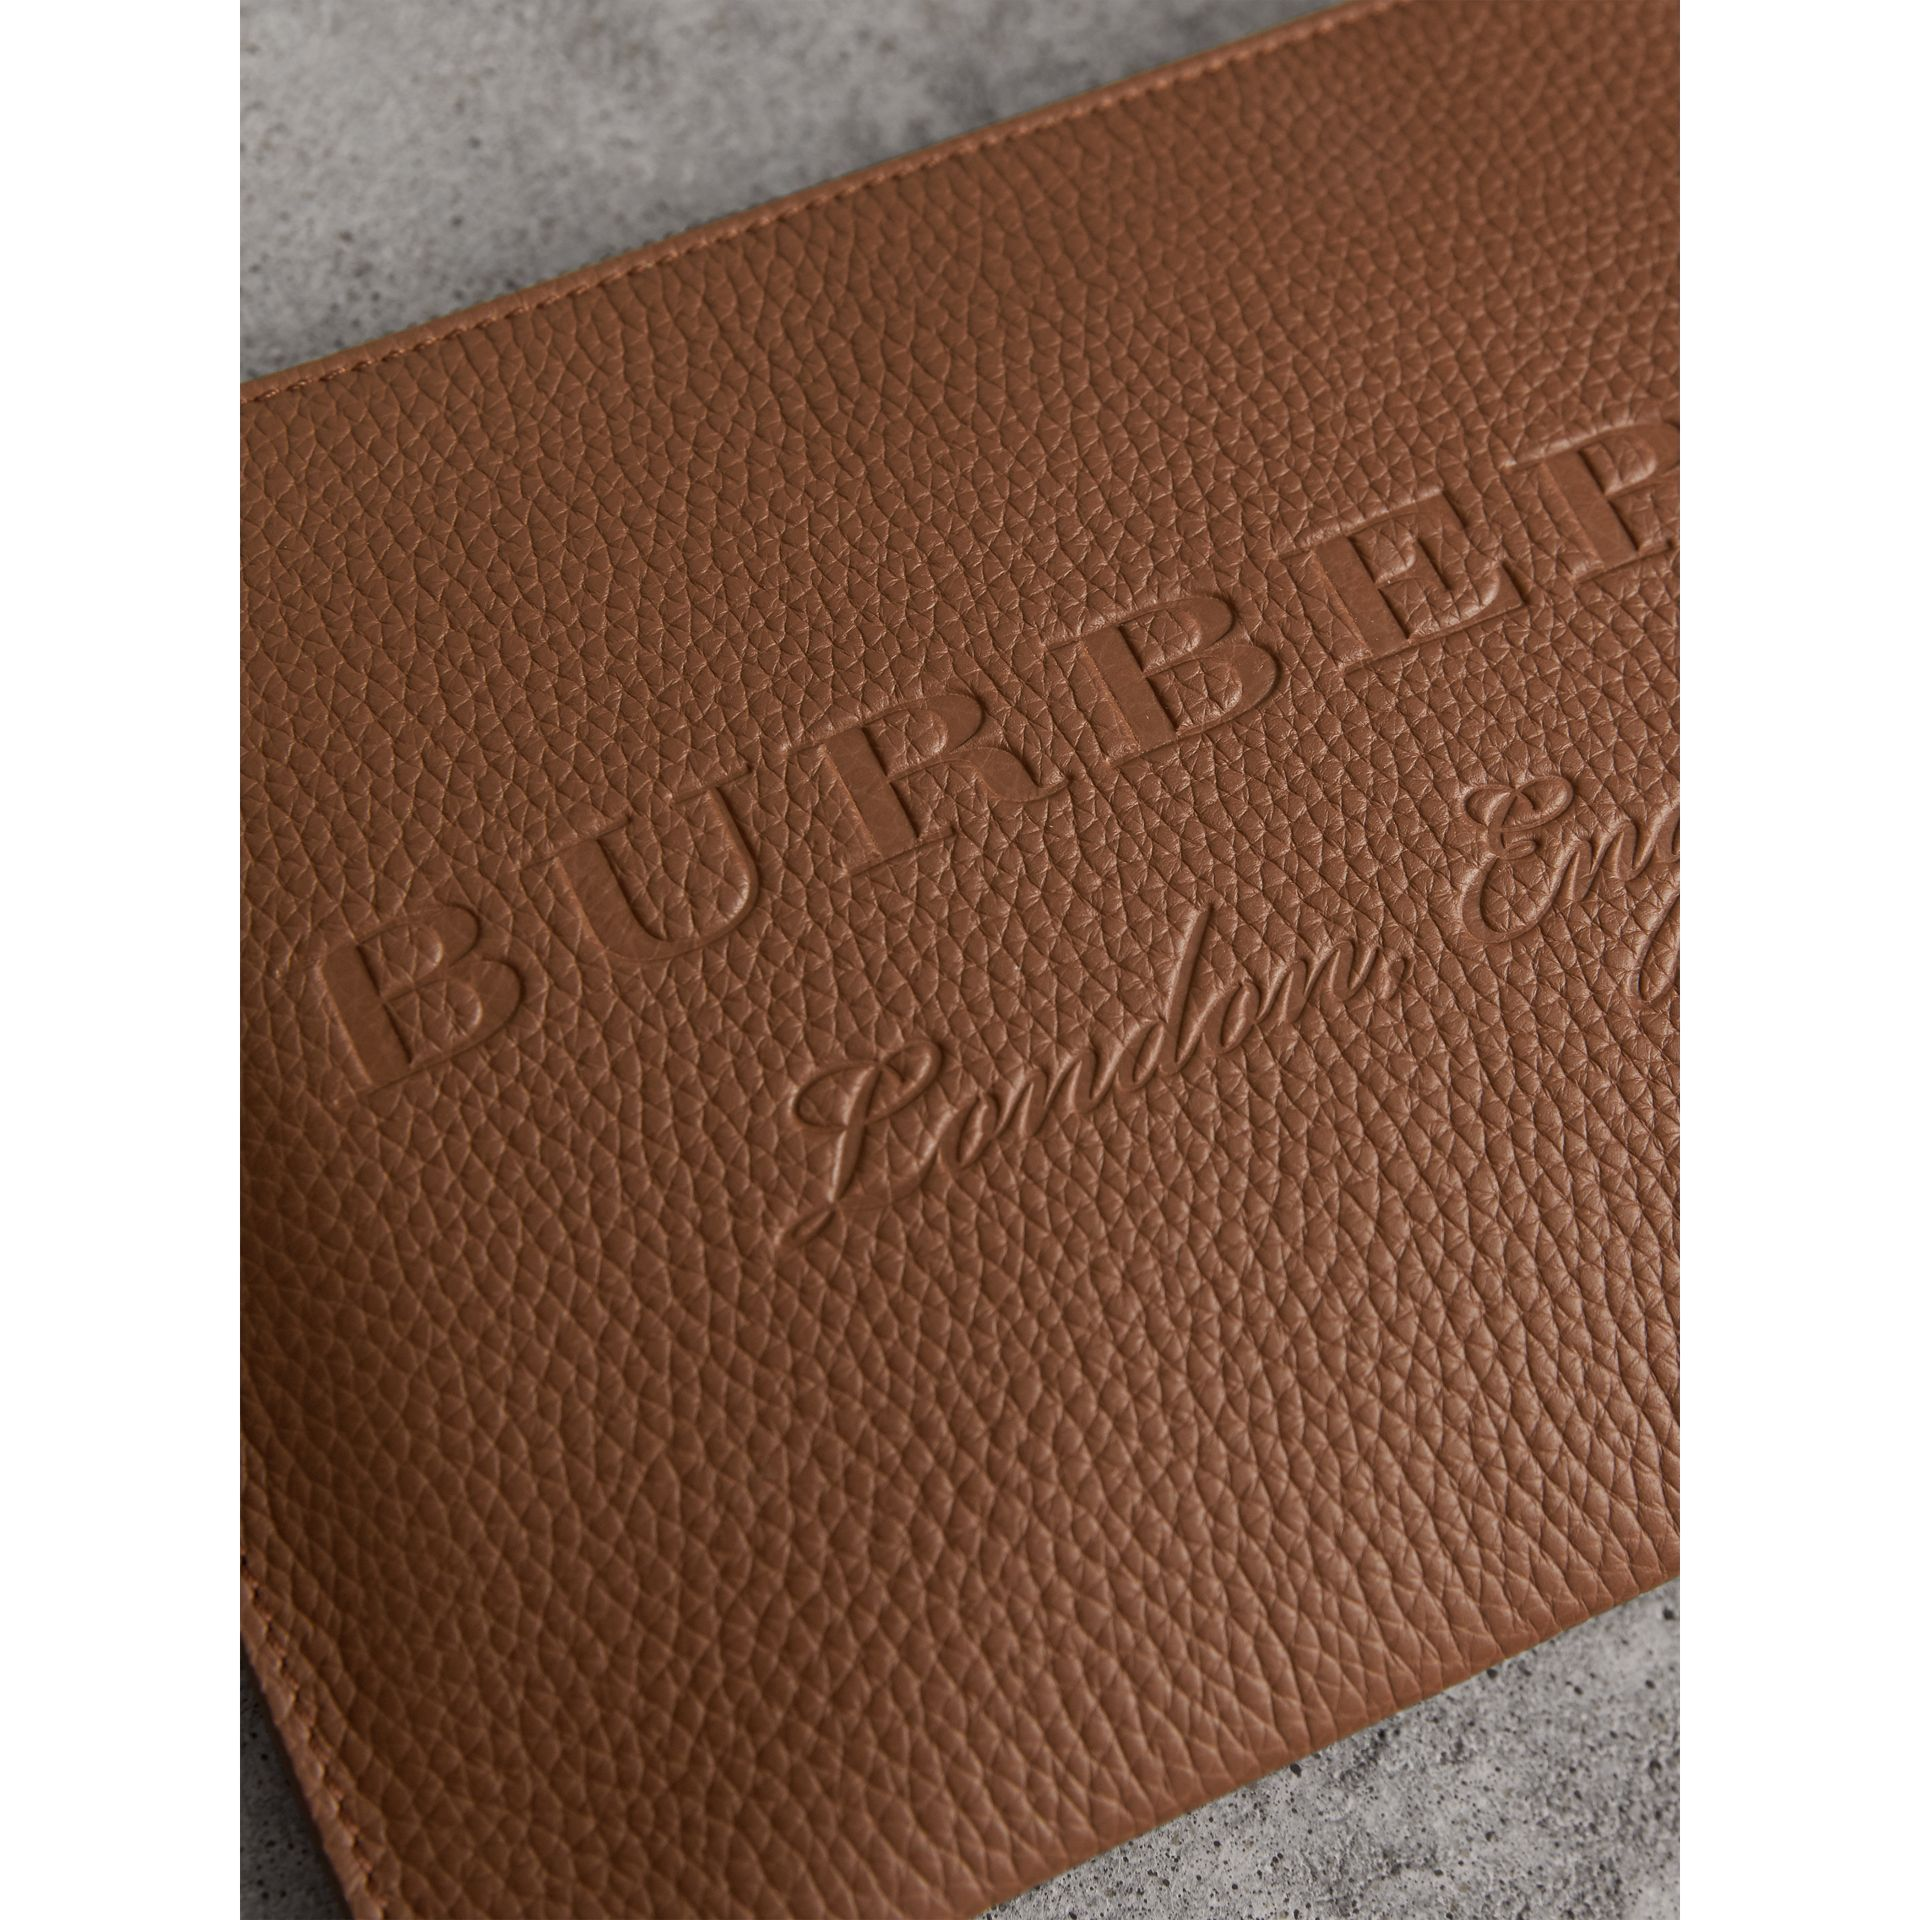 Embossed Leather Clutch Bag in Chestnut Brown - Women | Burberry Singapore - gallery image 1